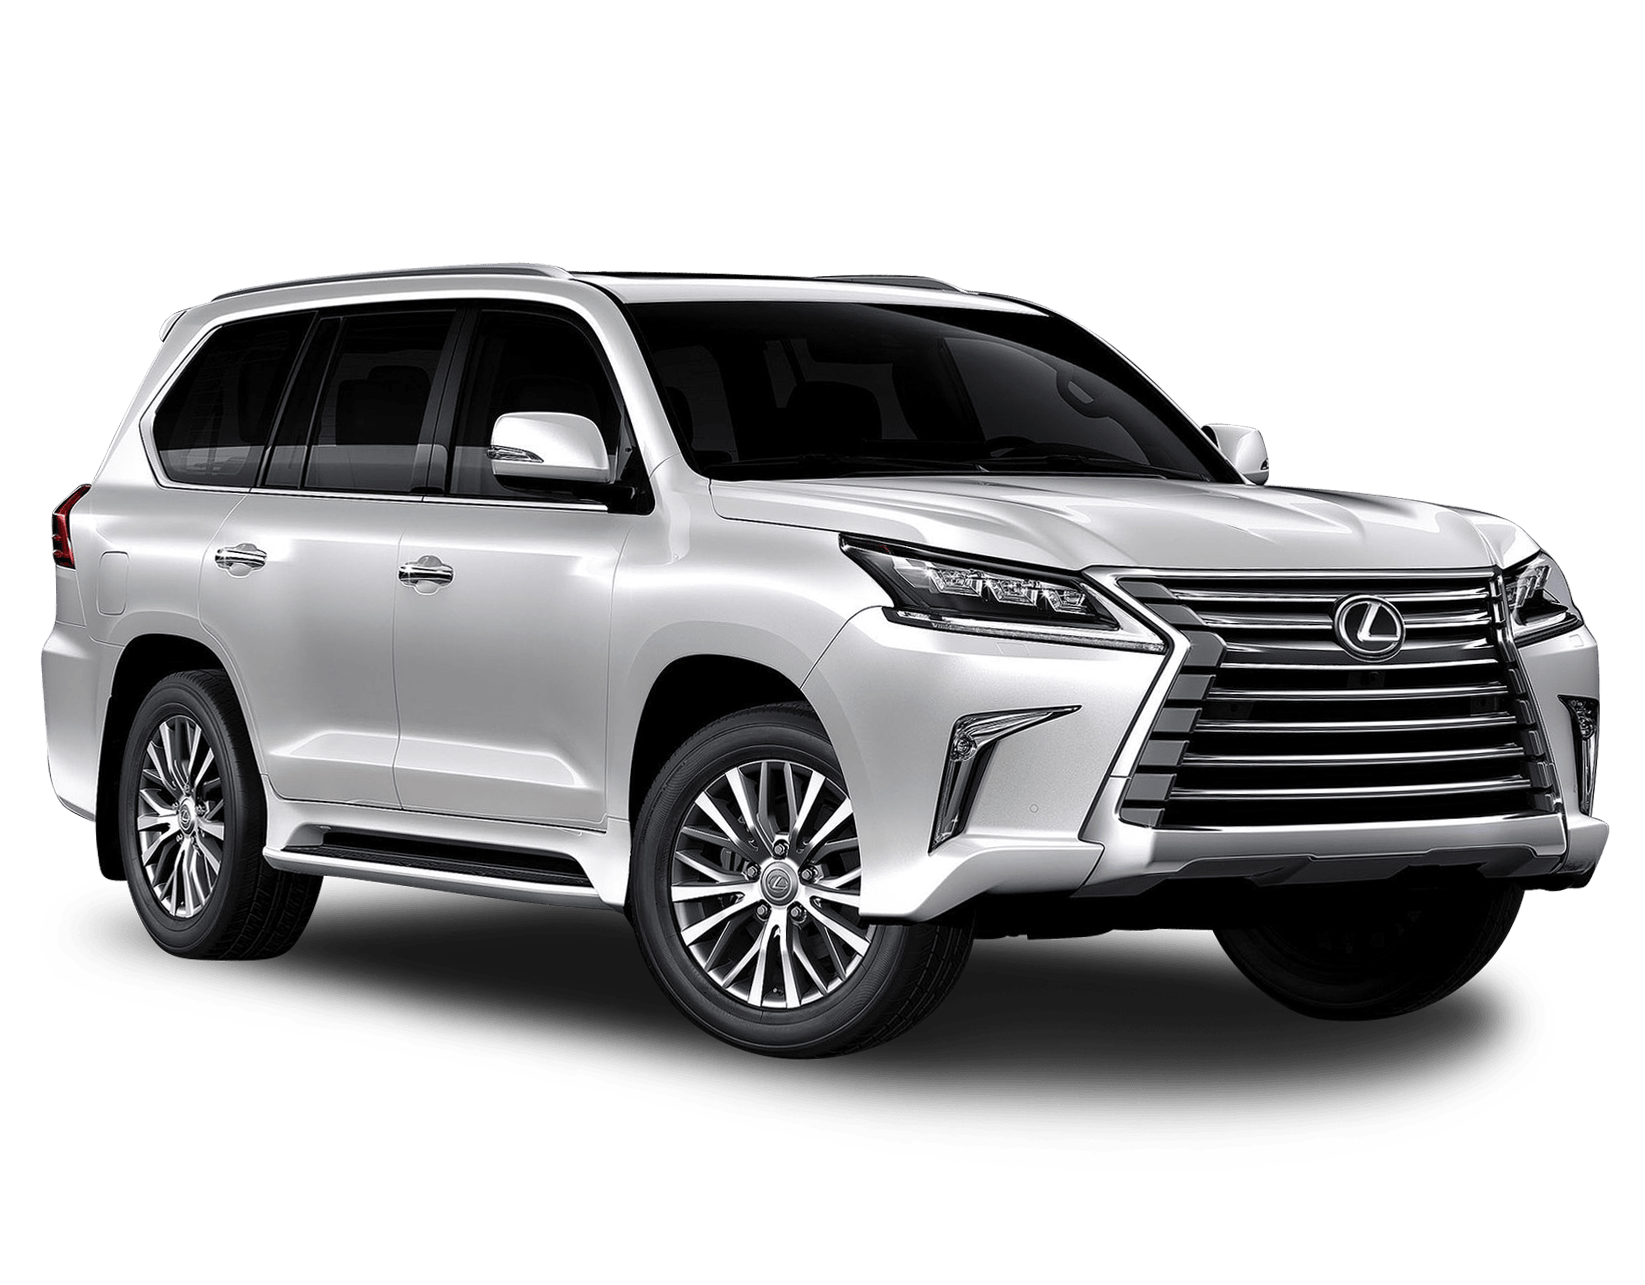 Lexus Lx 570 Review Price For Sale Colours Interior Specs Carsguide